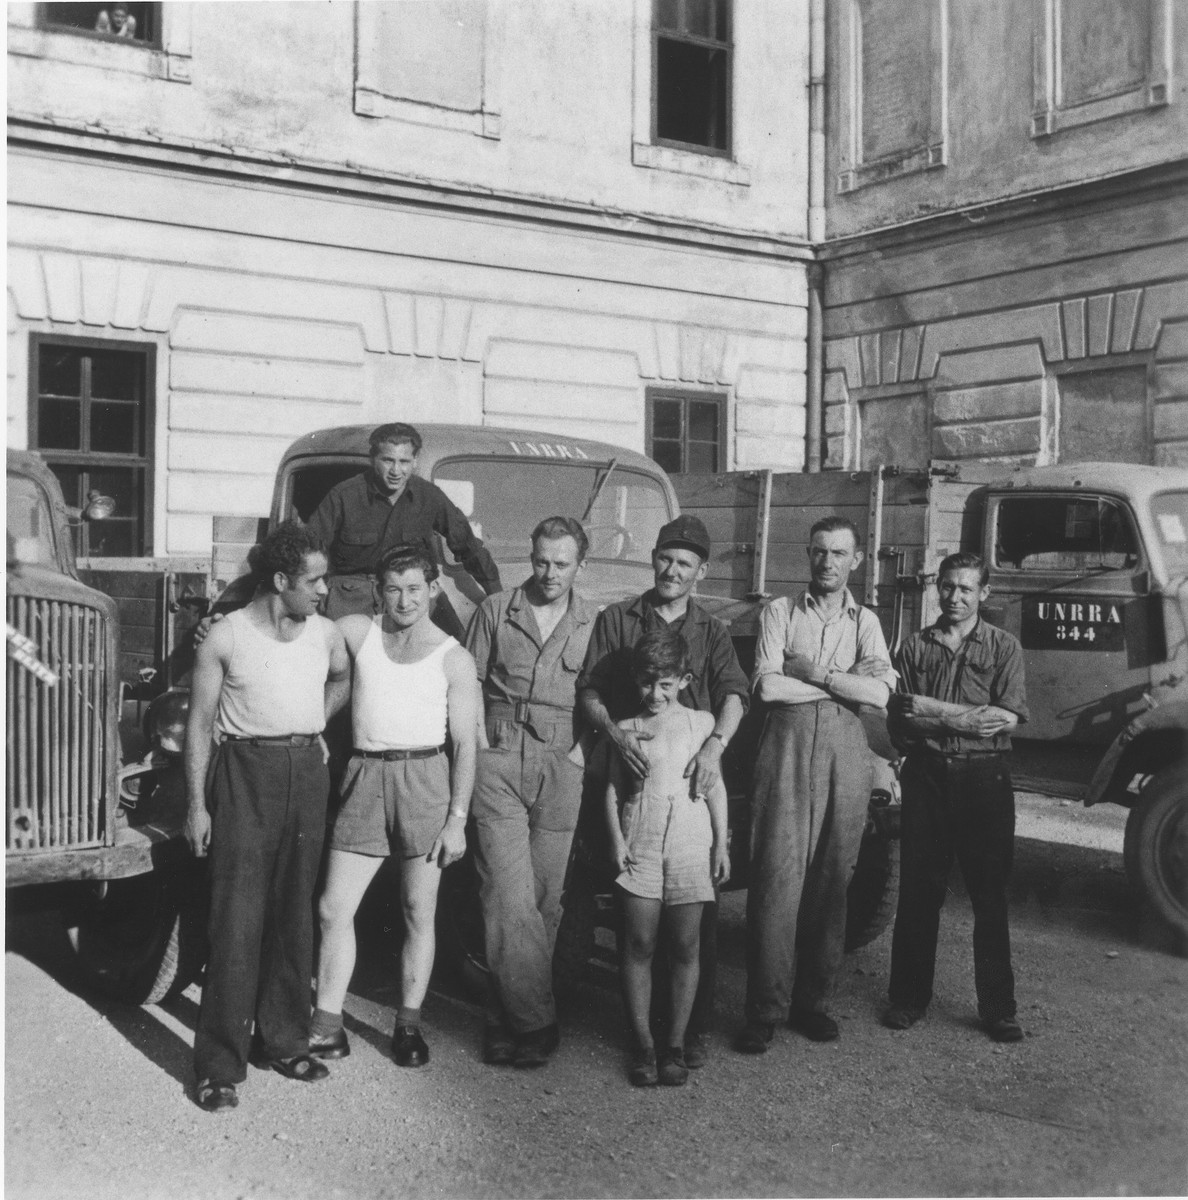 Drivers pose in front of UNRRA trucks at the Enns displaced persons camp.